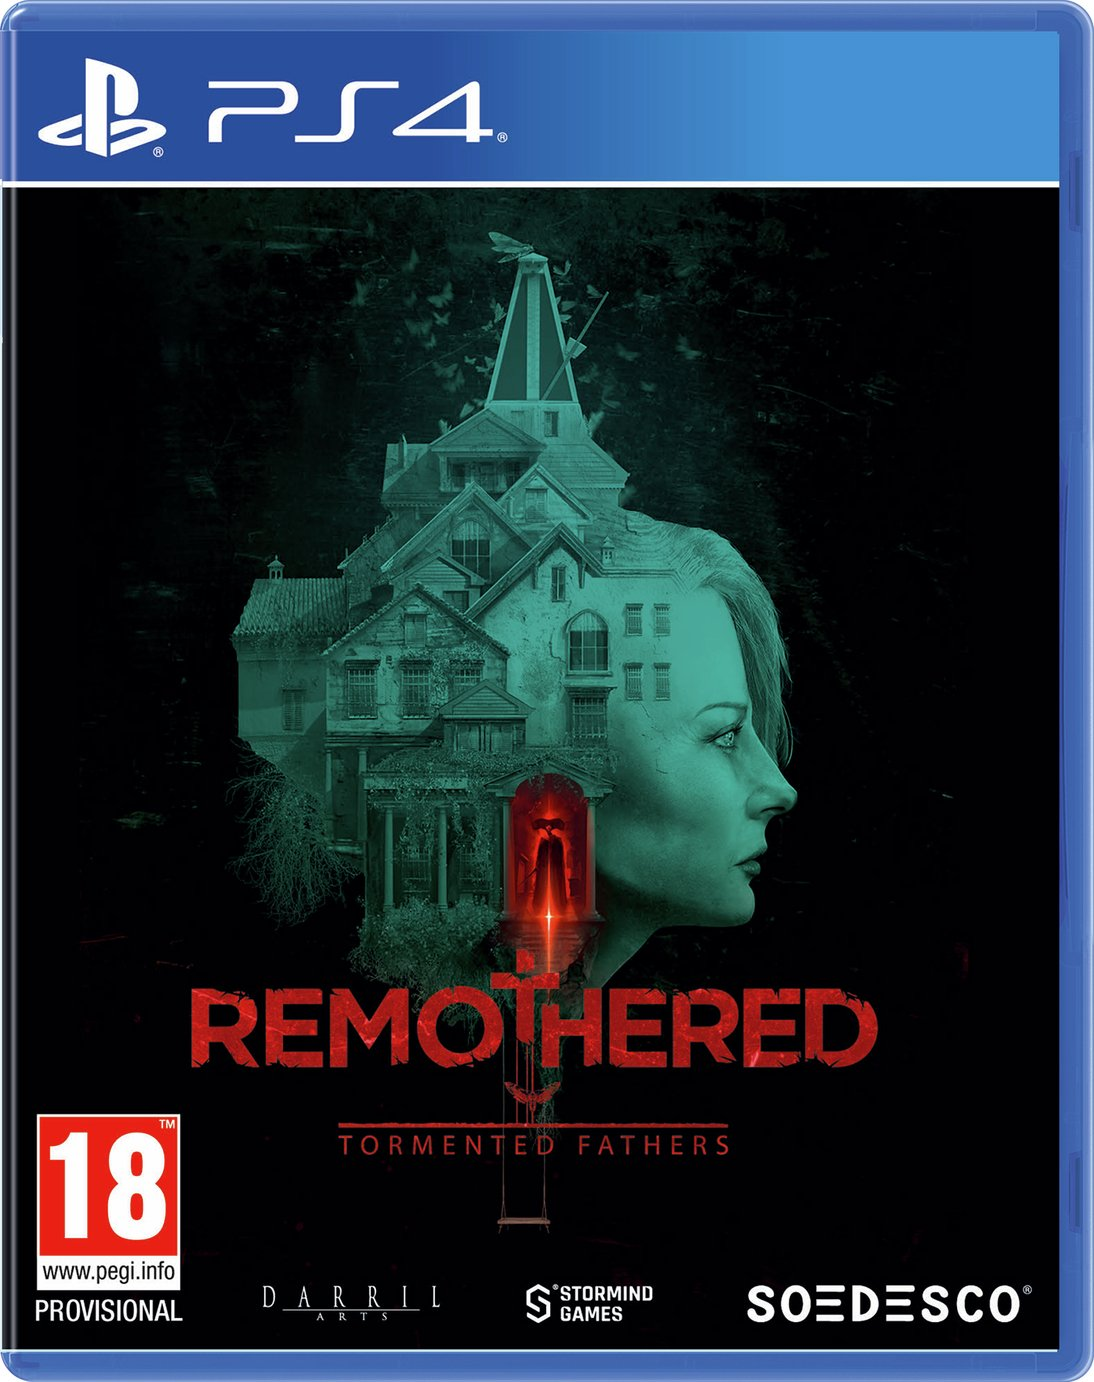 Remothered: Tormented Fathers PS4 Pre-Order Game